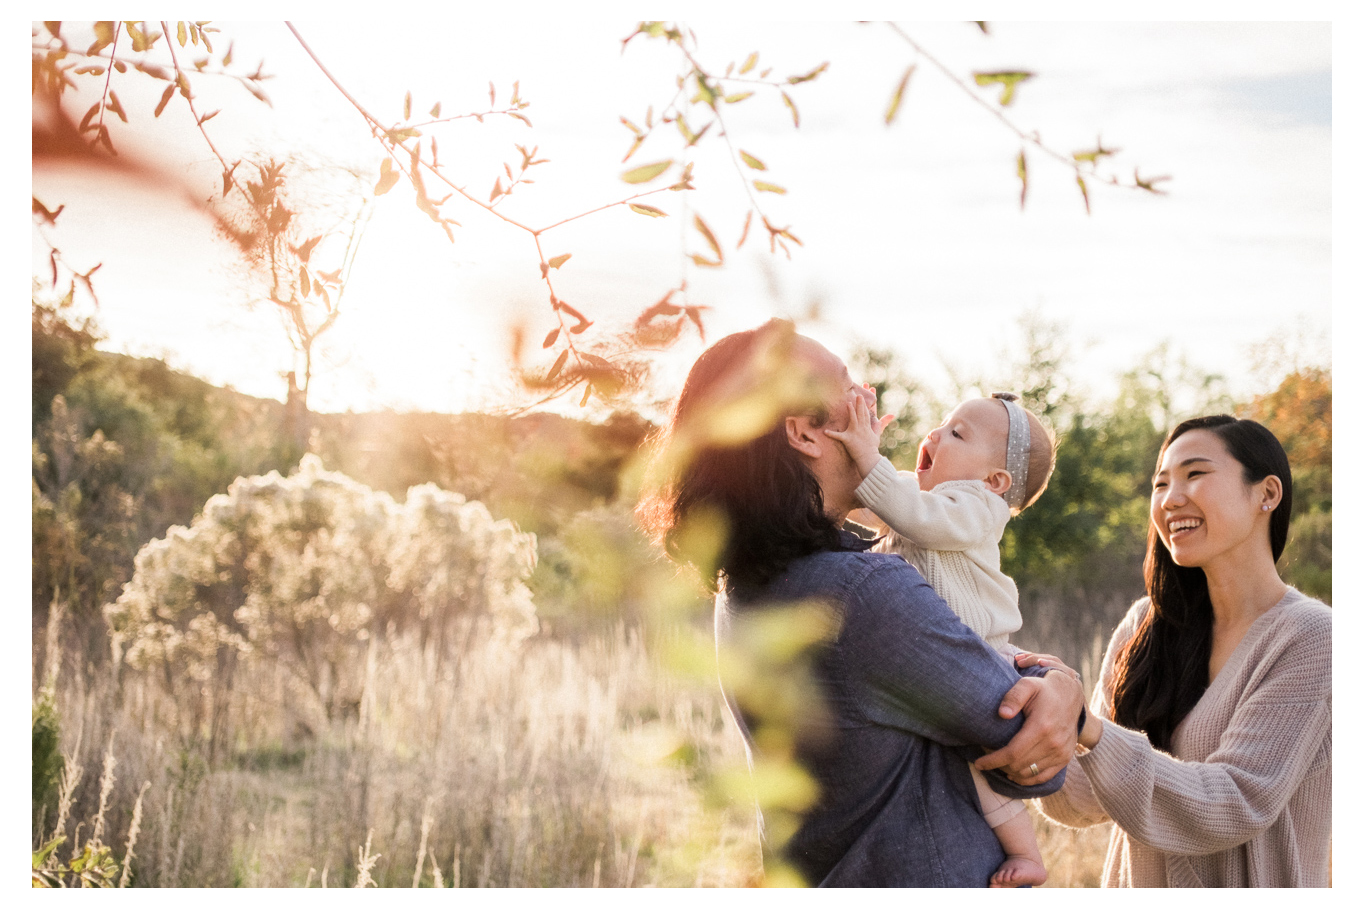 family fun outdoor session mom and baby one year old los penasquitos canyon preserve san diego portraits